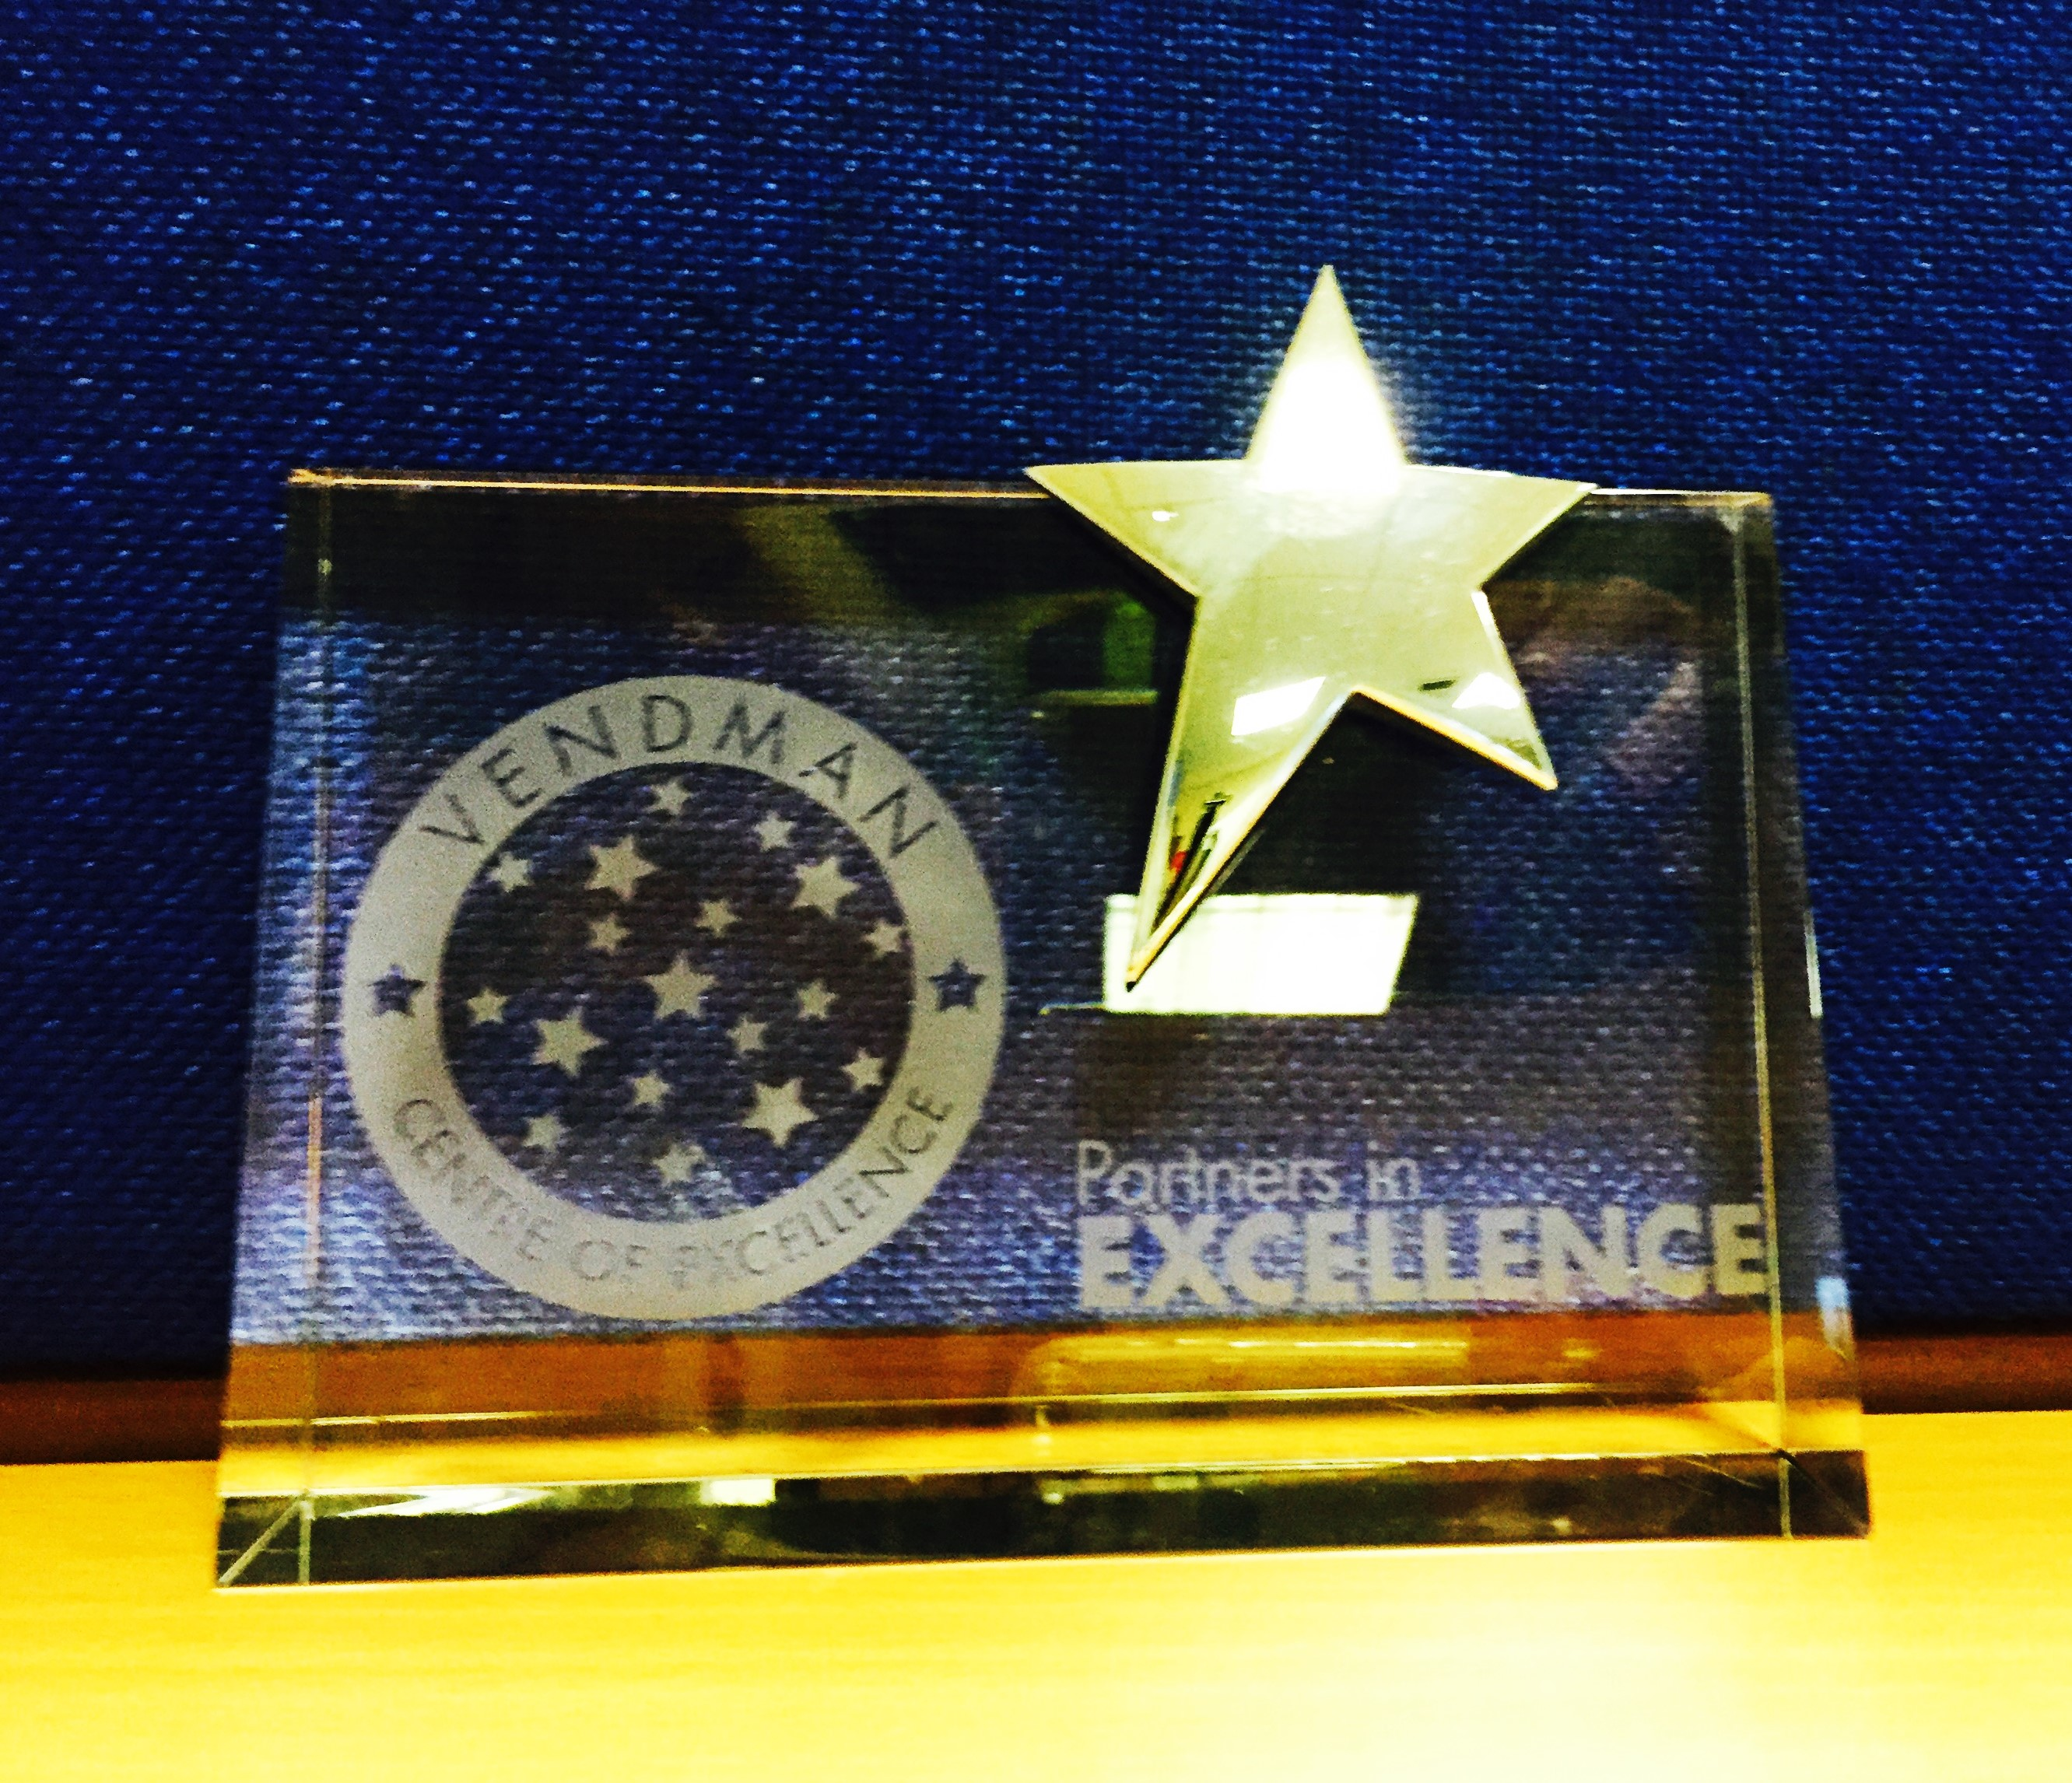 Centre for Excellence award